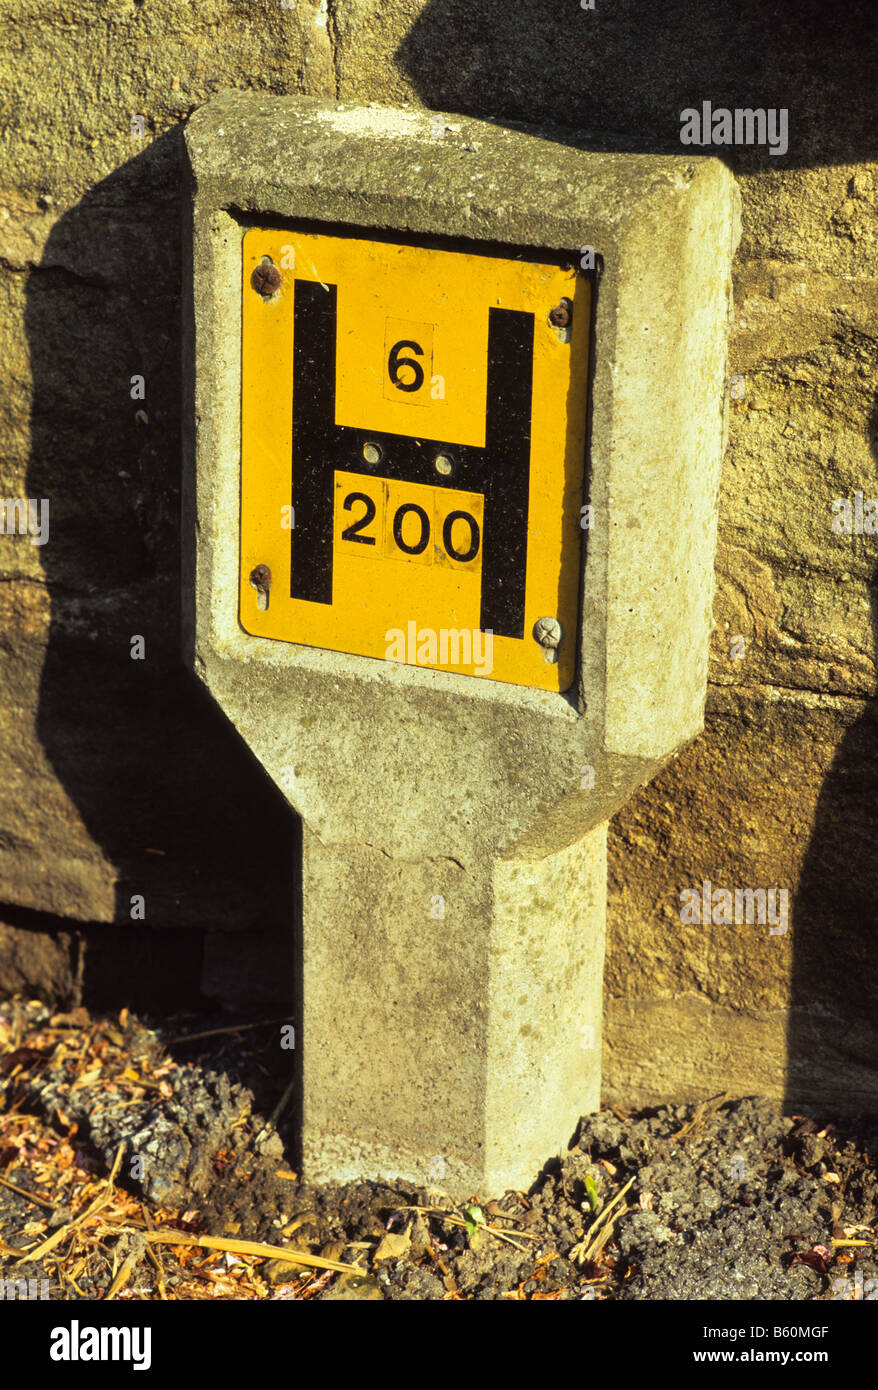 Emergency Roadside Service >> roadside sign giving position of fire hydrant as aid to fire service Stock Photo: 20914447 - Alamy